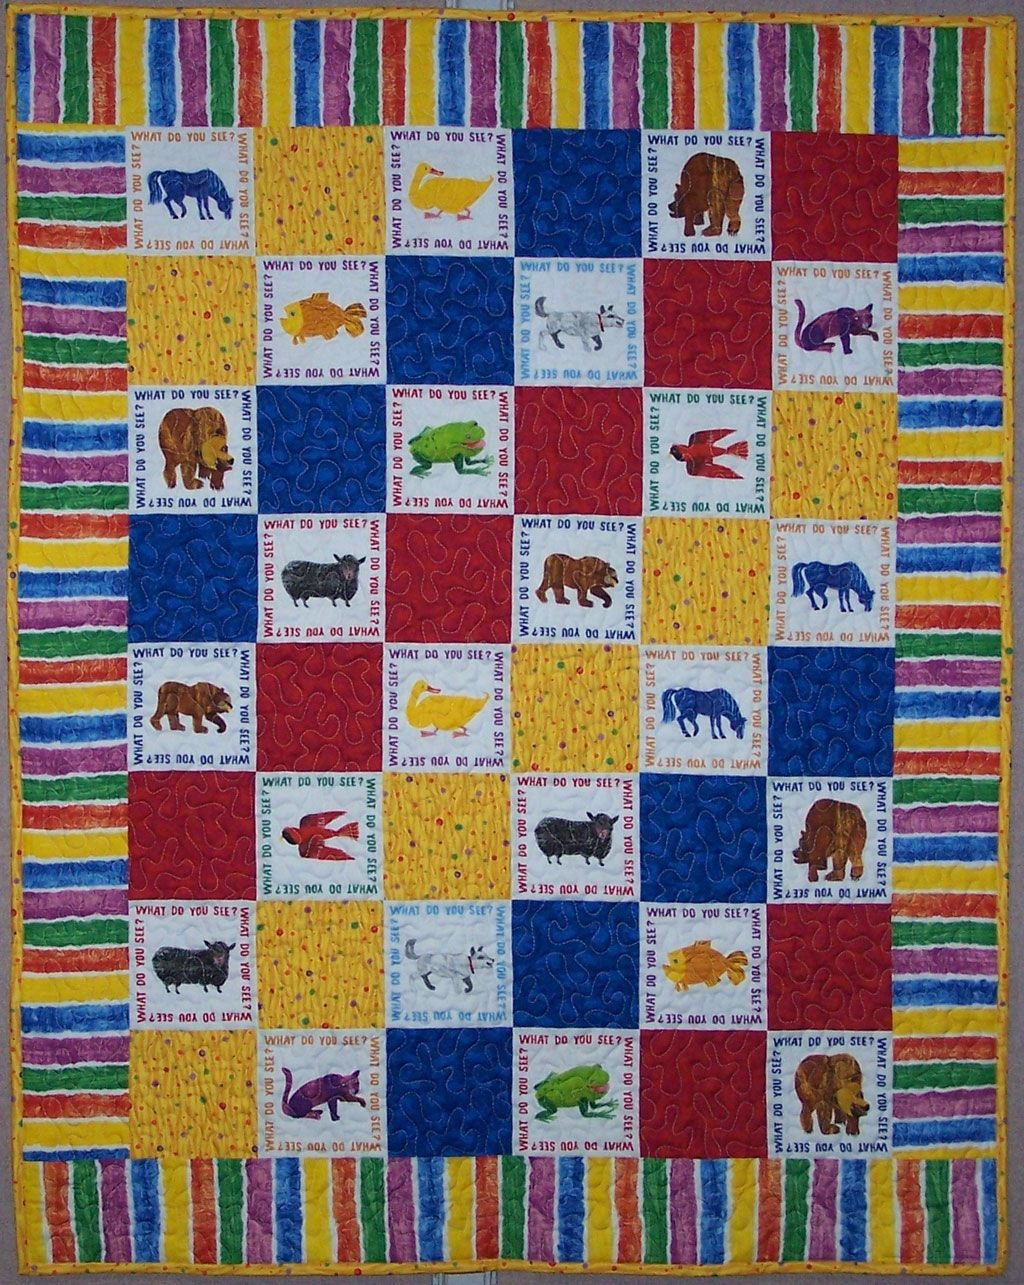 brown bear brown bear quilt - Google Search | Quilting | Pinterest ... : eric carle quilt kits - Adamdwight.com